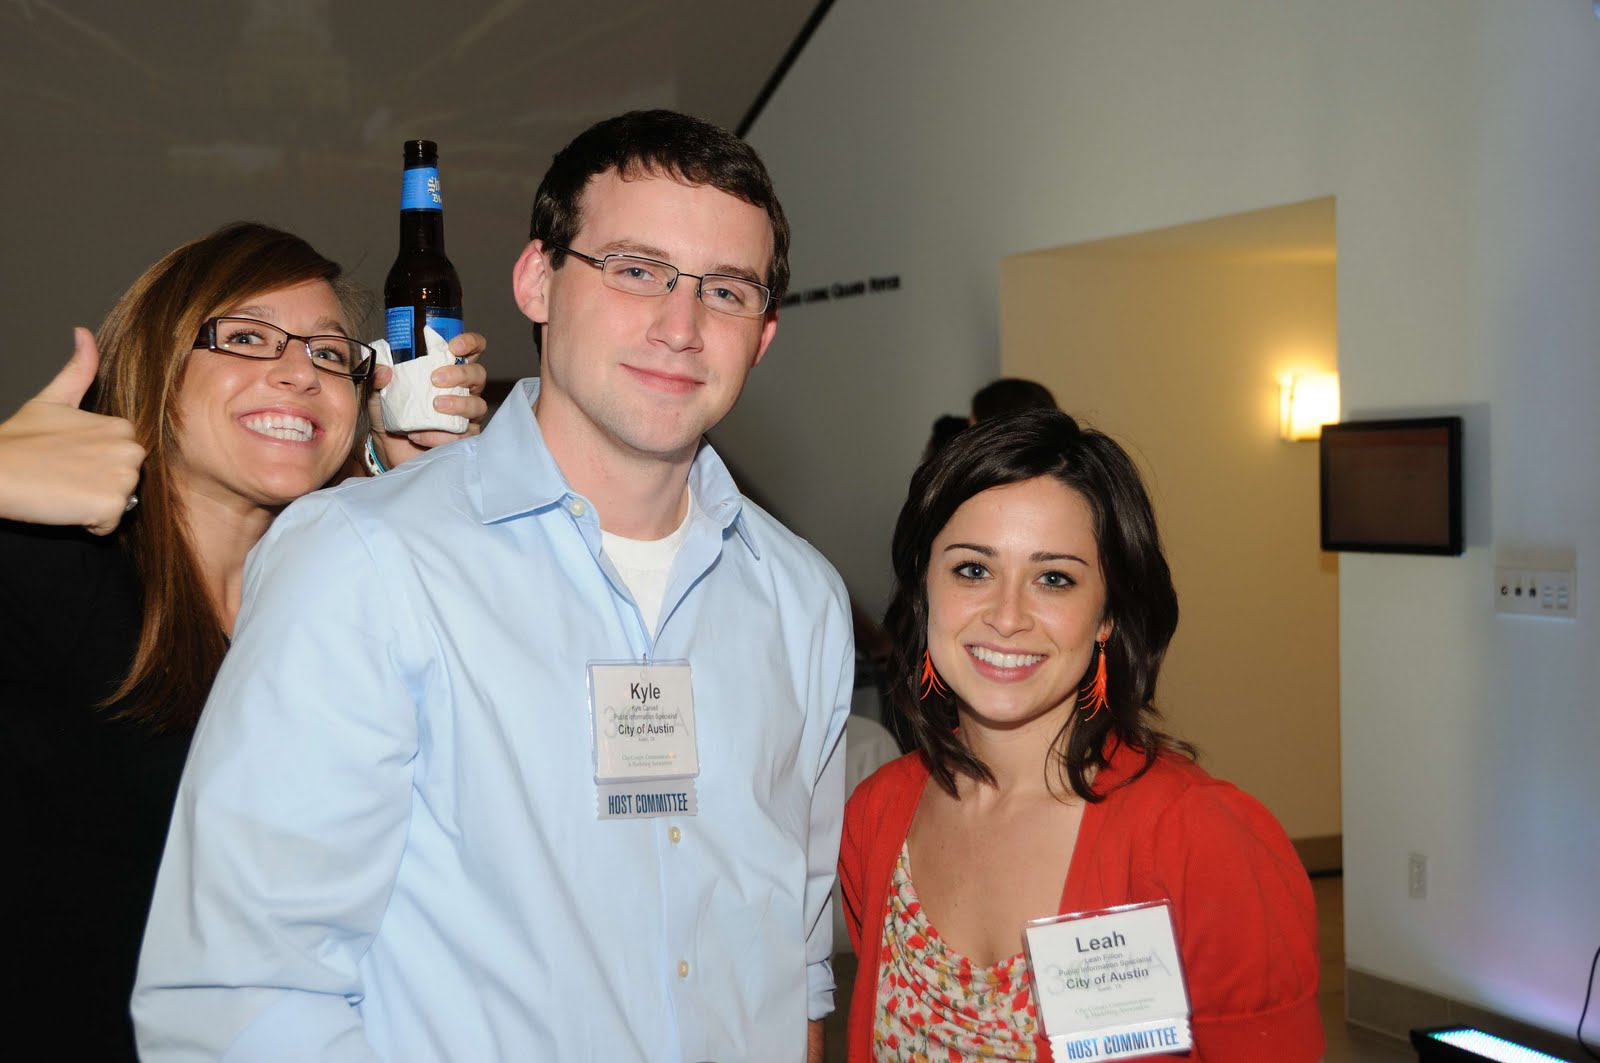 Samantha Parks, Kyle Carvell and Leah Fillion - City of Austin, TX